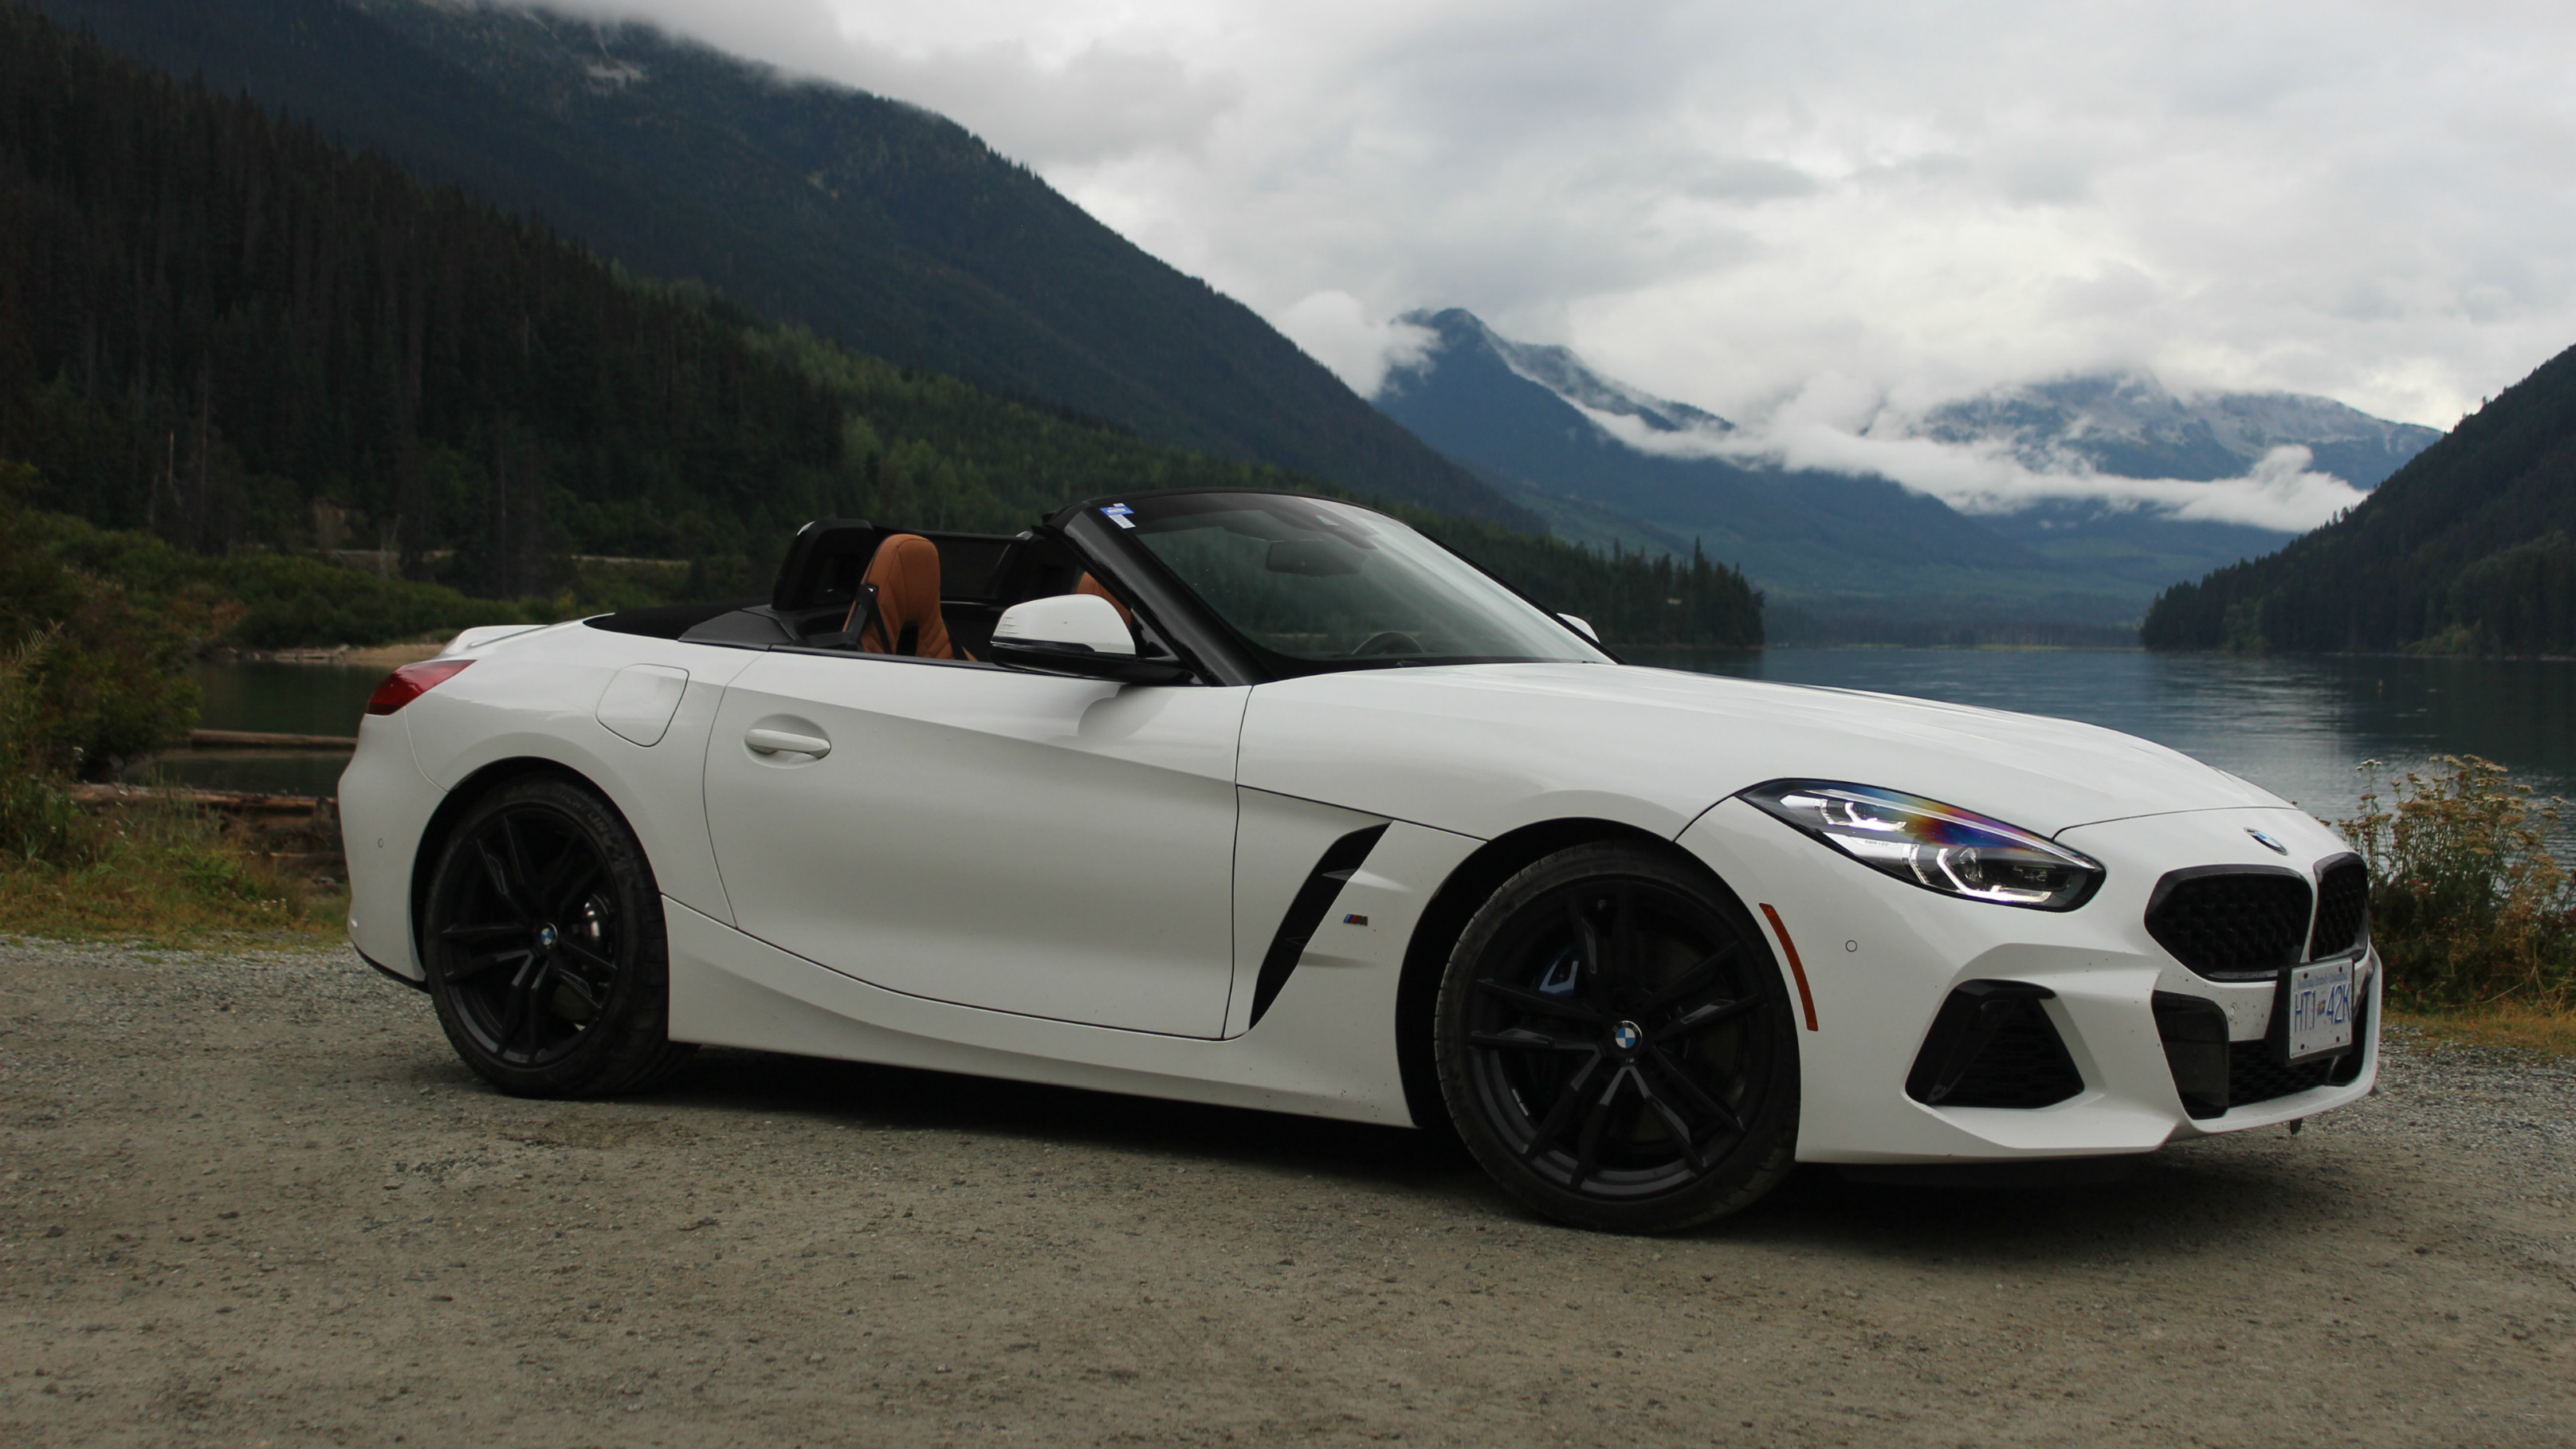 2020 BMW Z4 Roadster Rumors